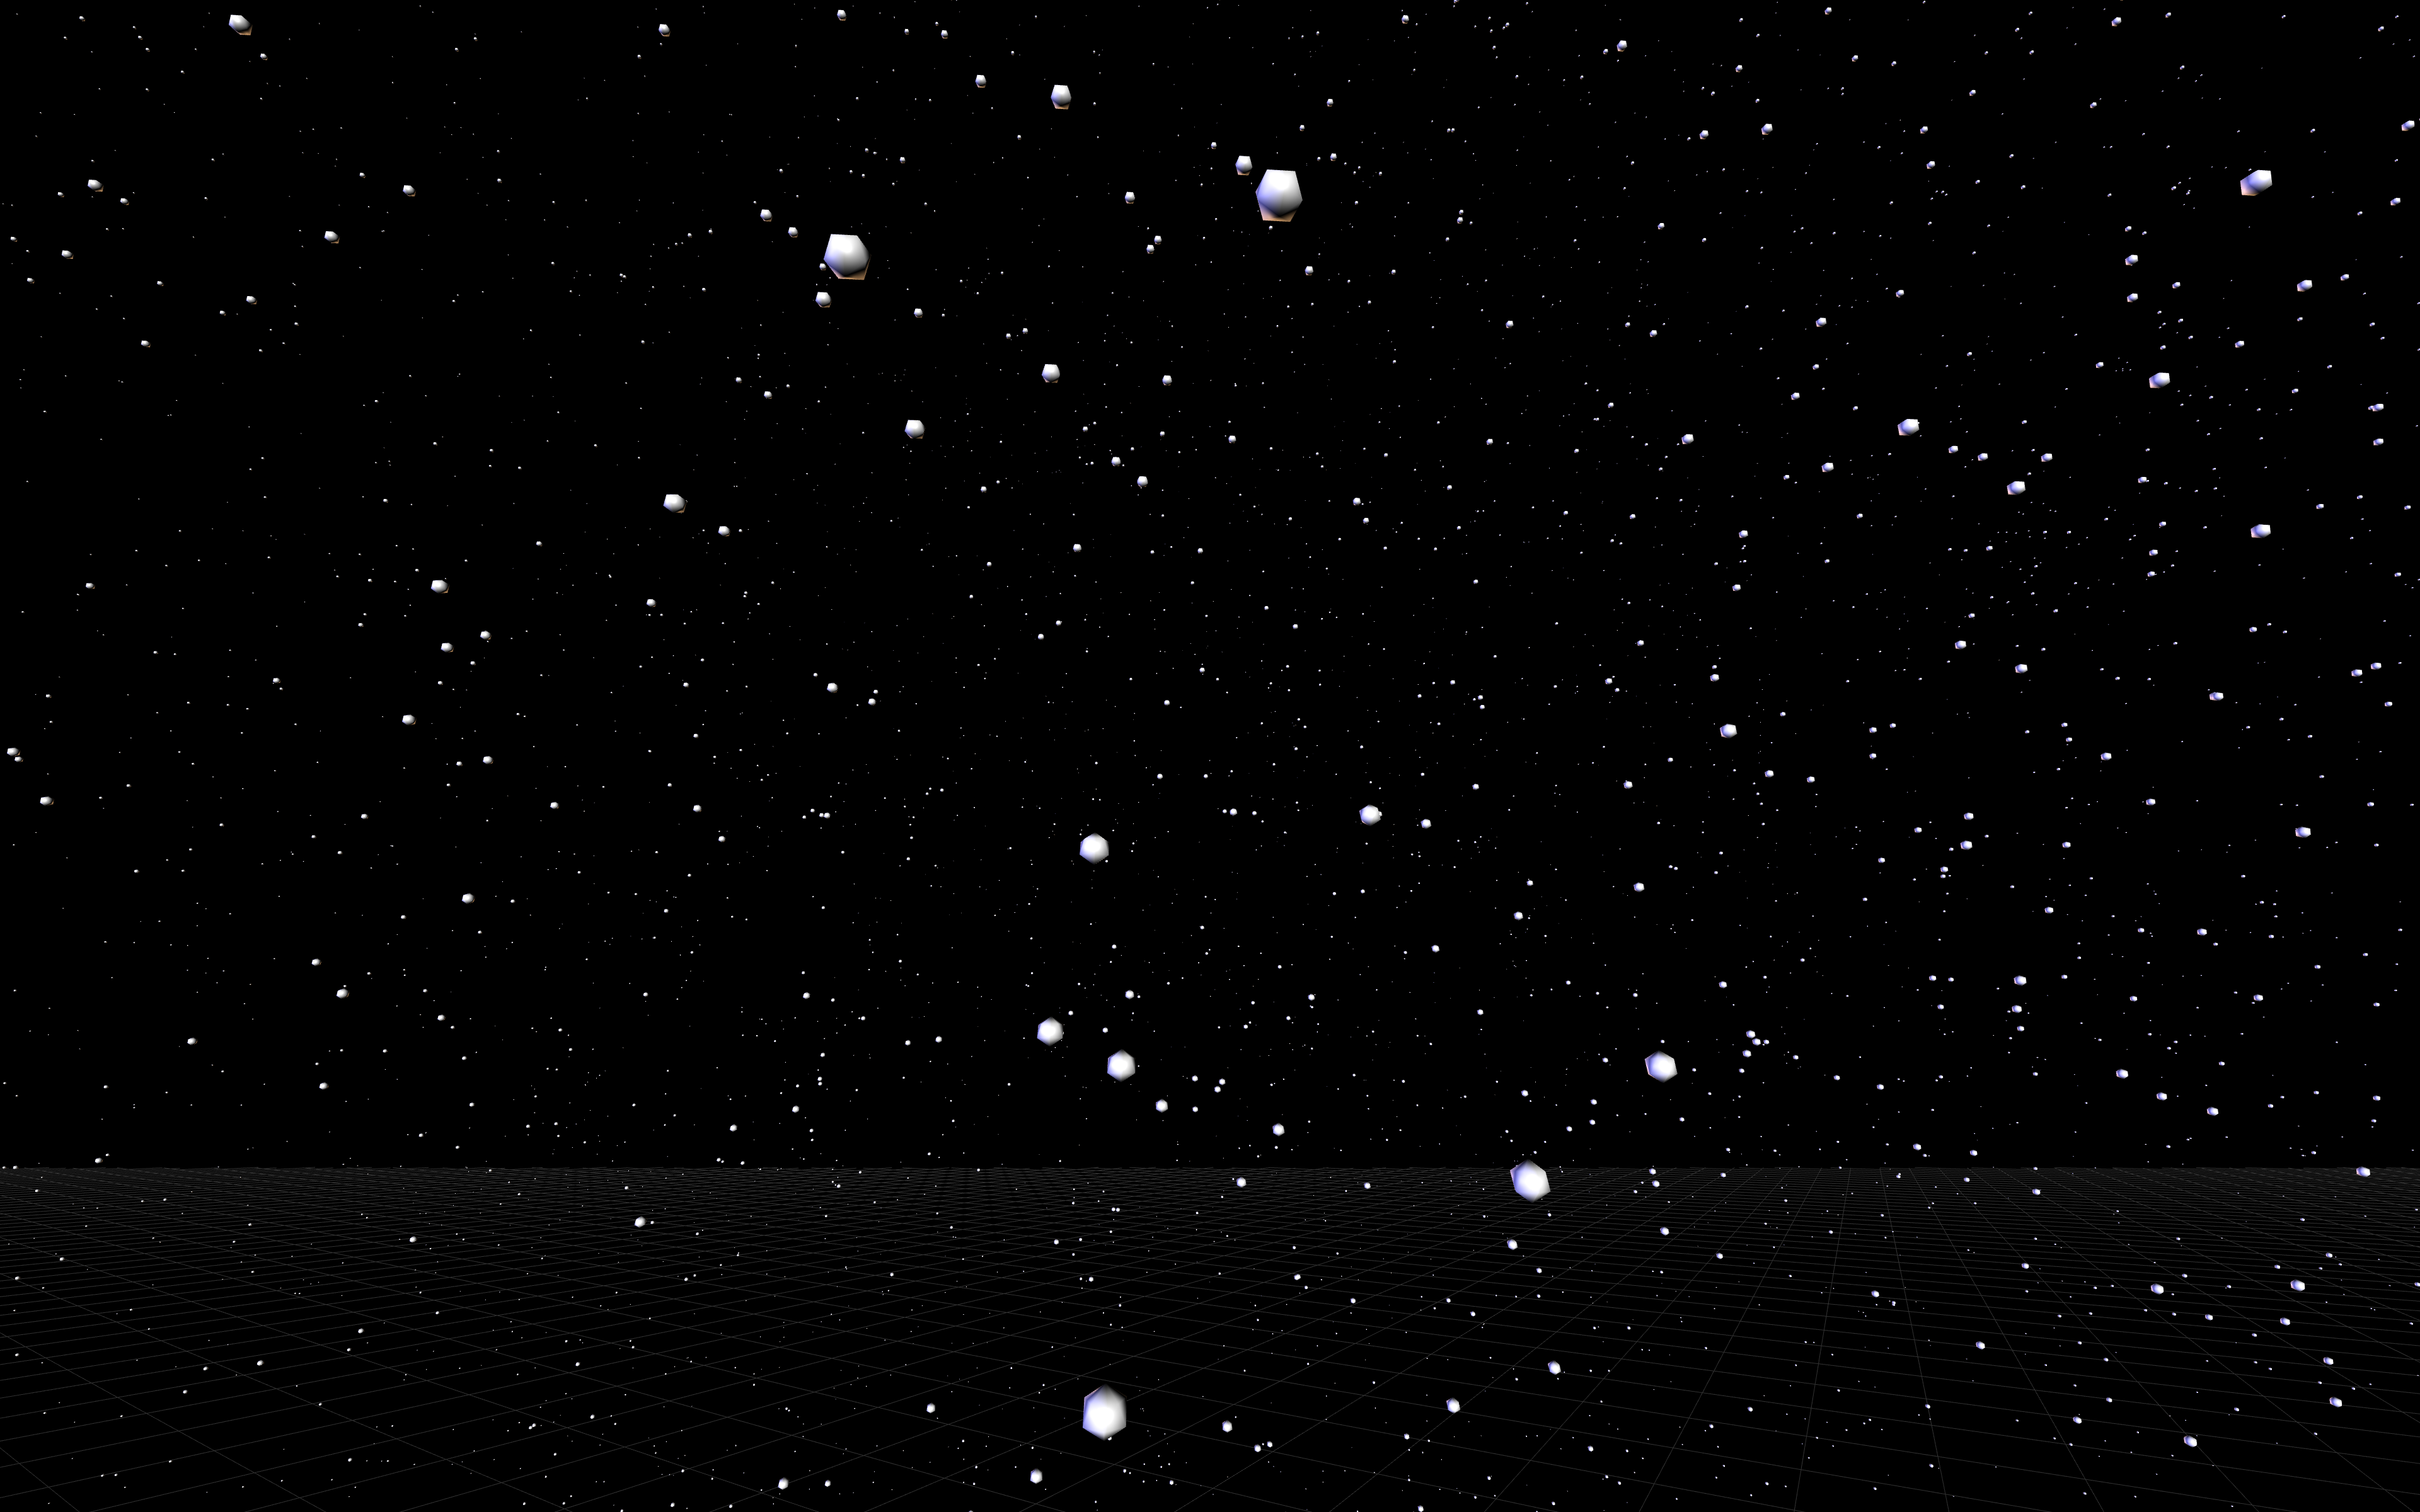 A full immersive view of the closest 35000 stars as seen from Earth, created with VRDeploy and the StarData function.